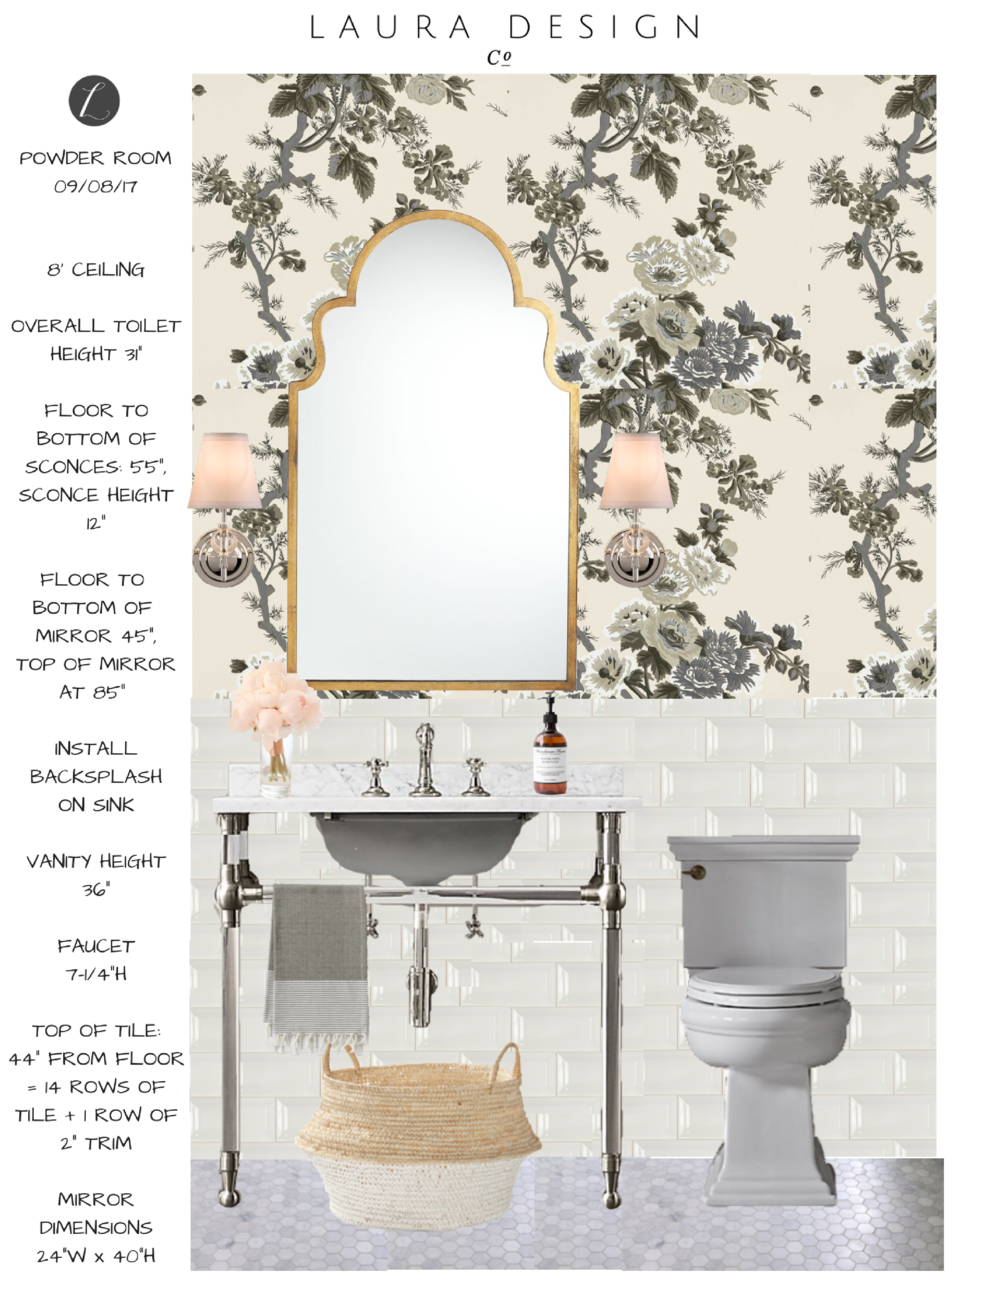 One Room Challenge Powder Room - Laura Design Co.